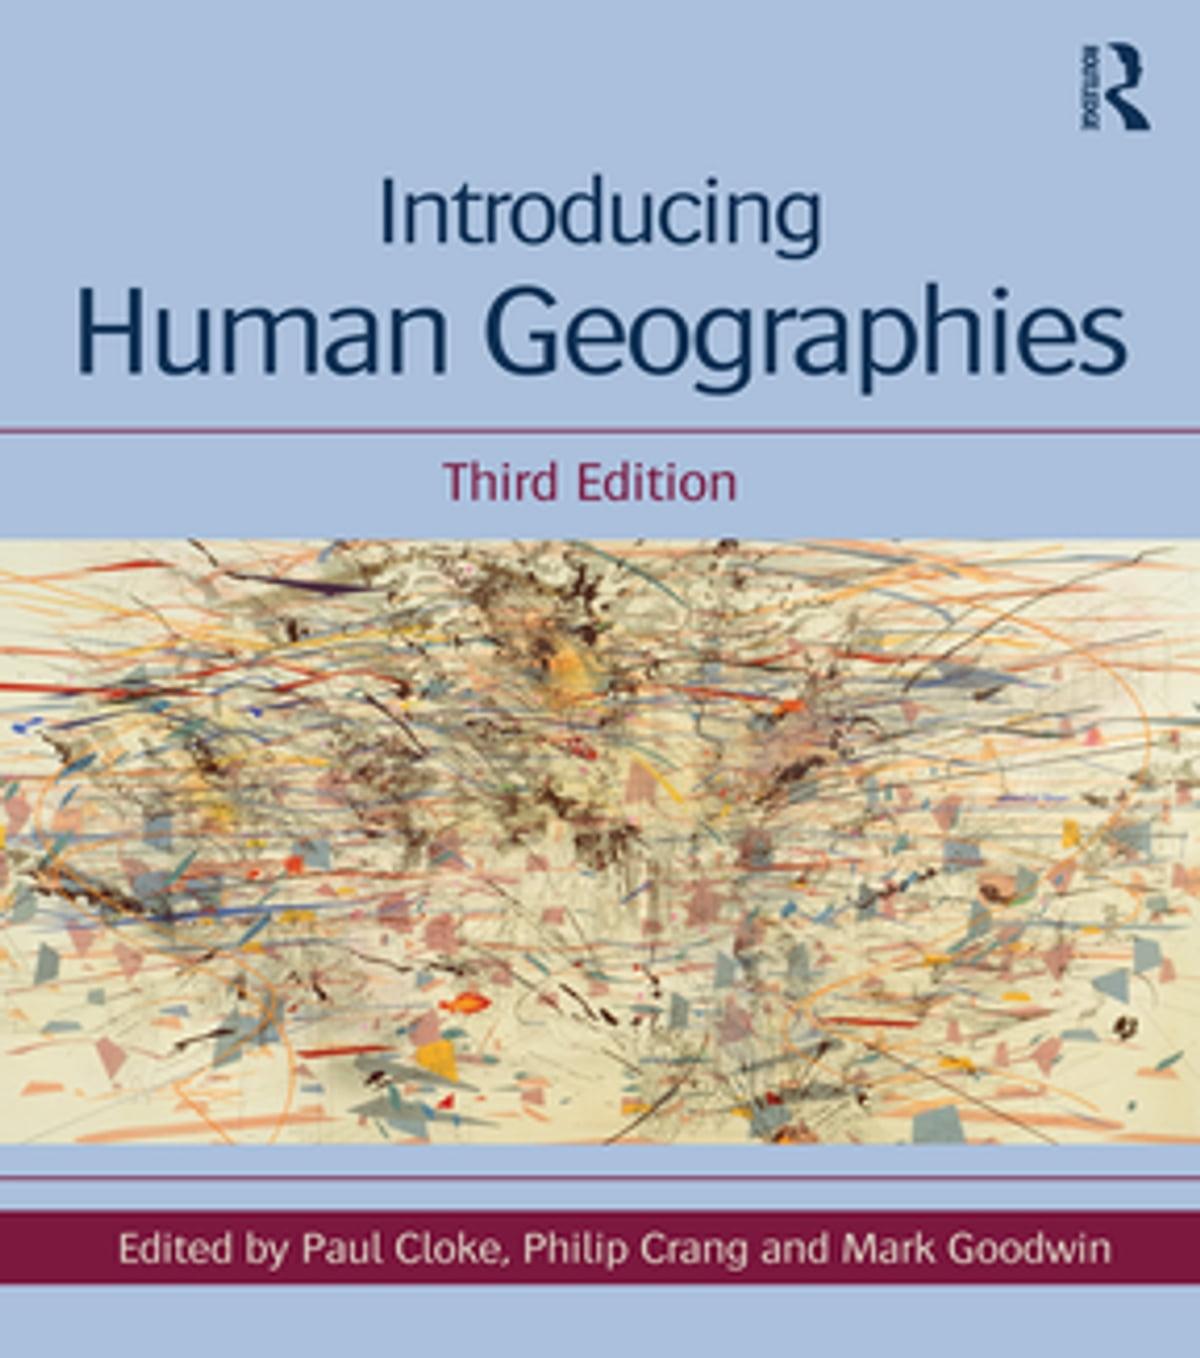 Introducing human geographies, third edition | paul cloke book.